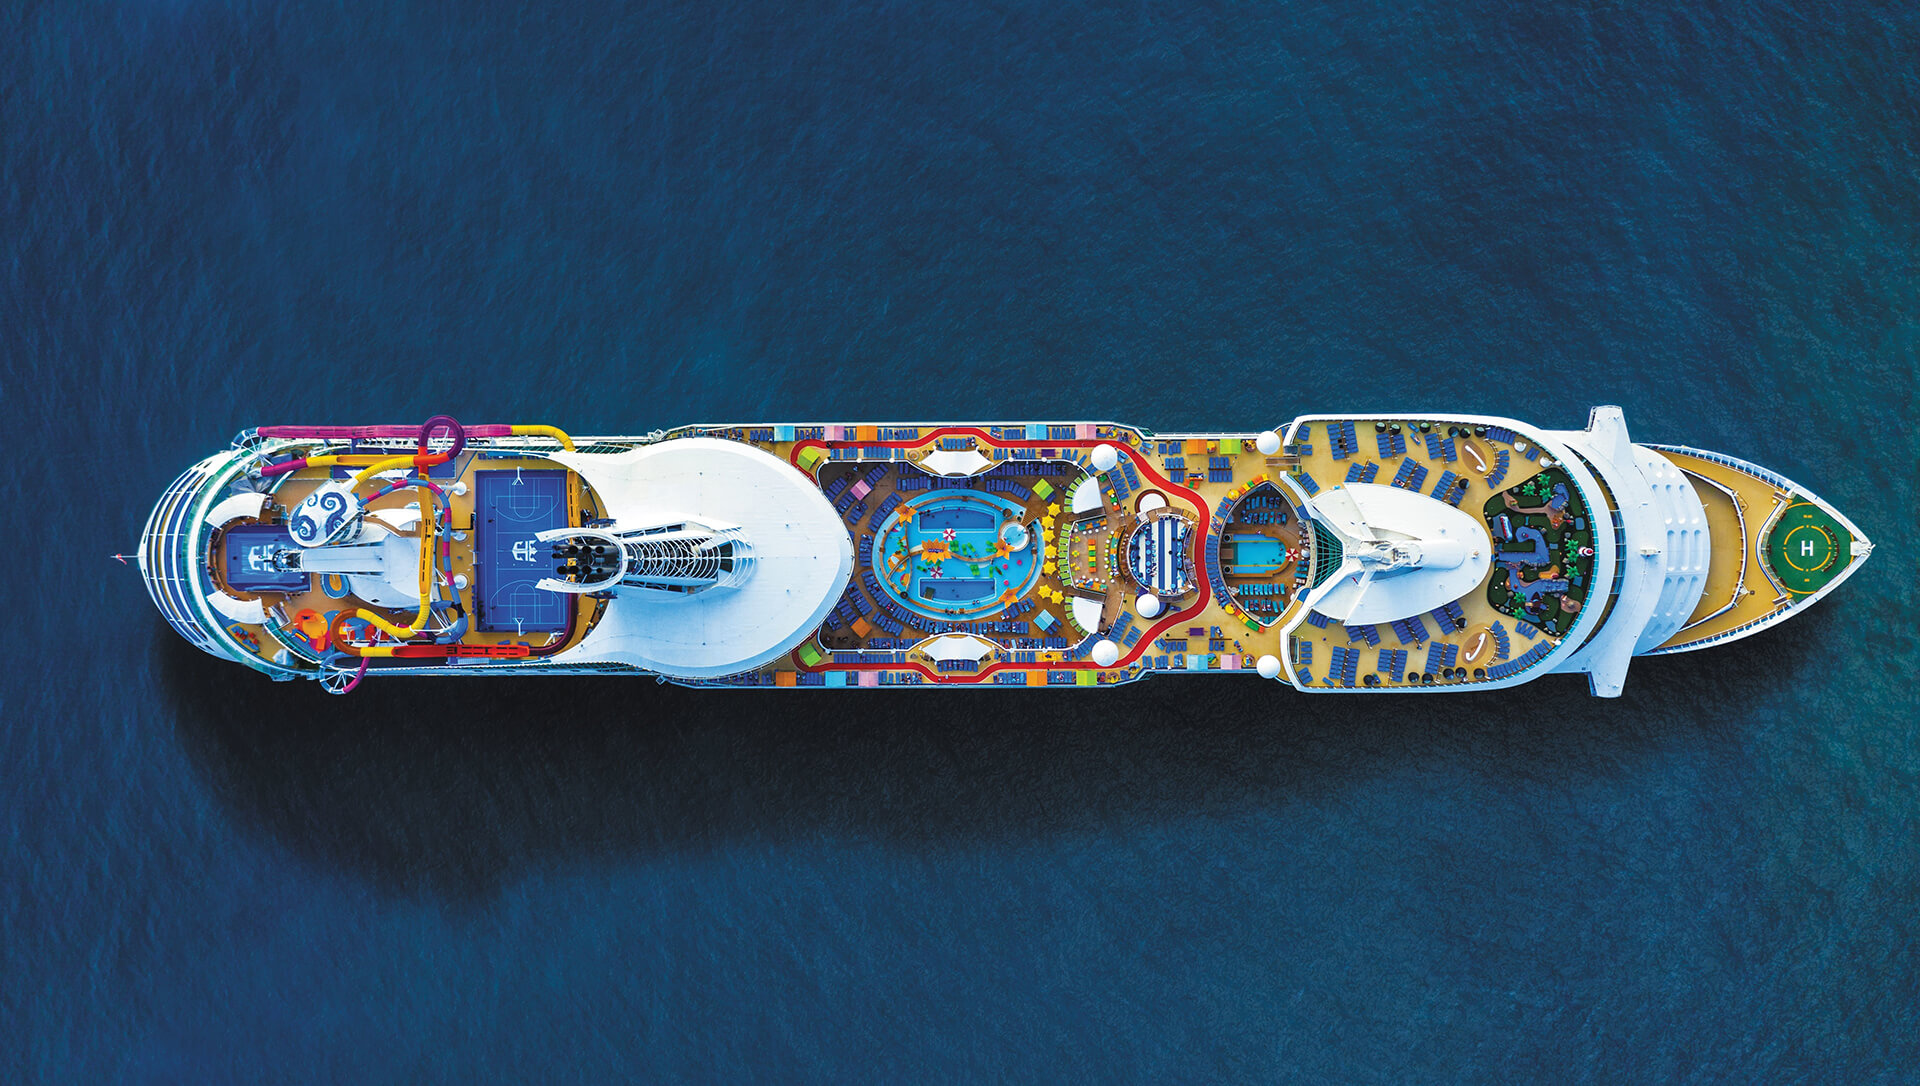 Royal Caribbean's Navigator of the Seas Aerial View